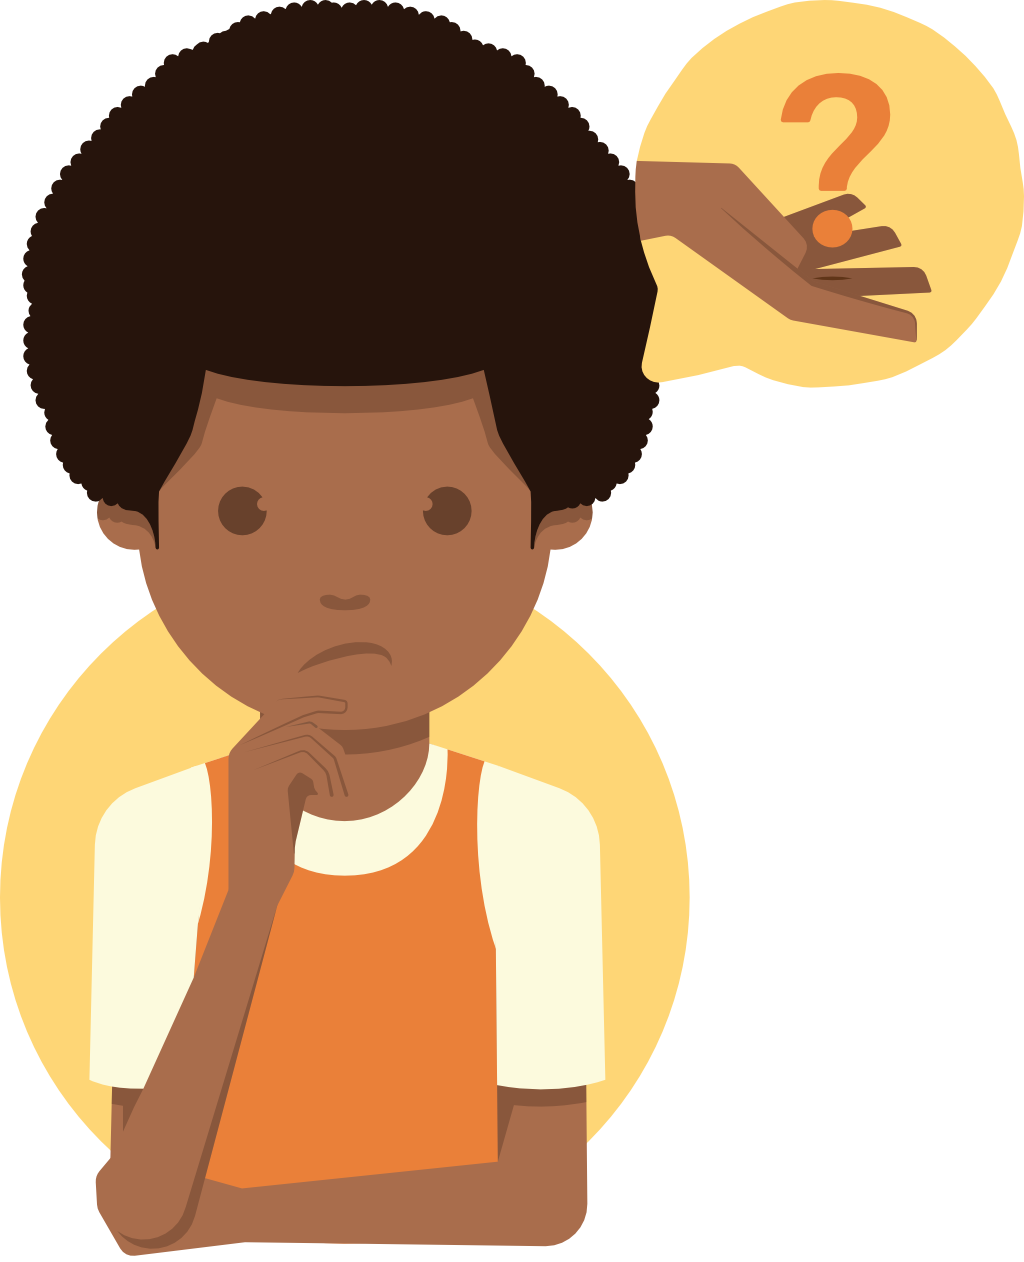 Illustration of a person considering a question